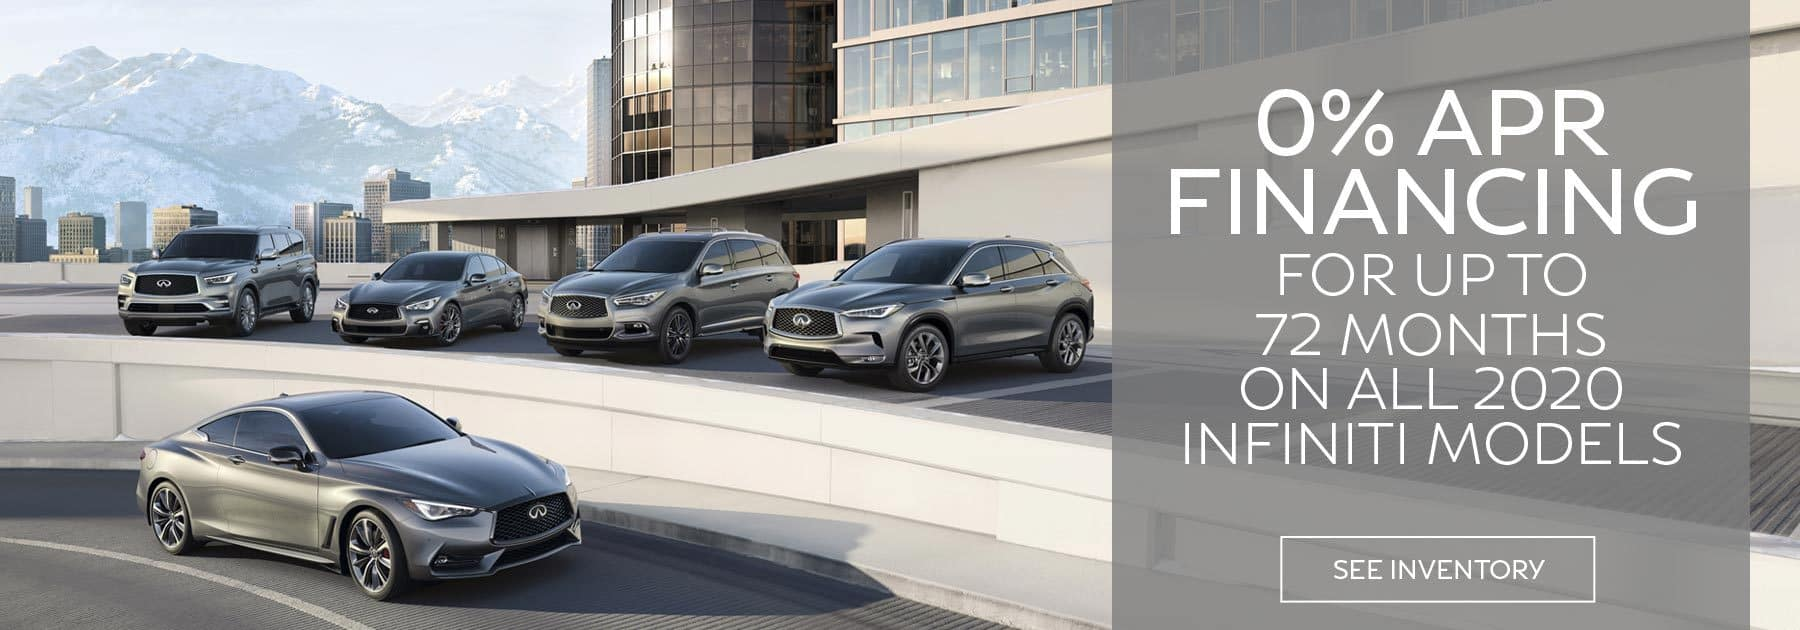 0% APR Financing for up to 72 months on all 2020 INFINITI models